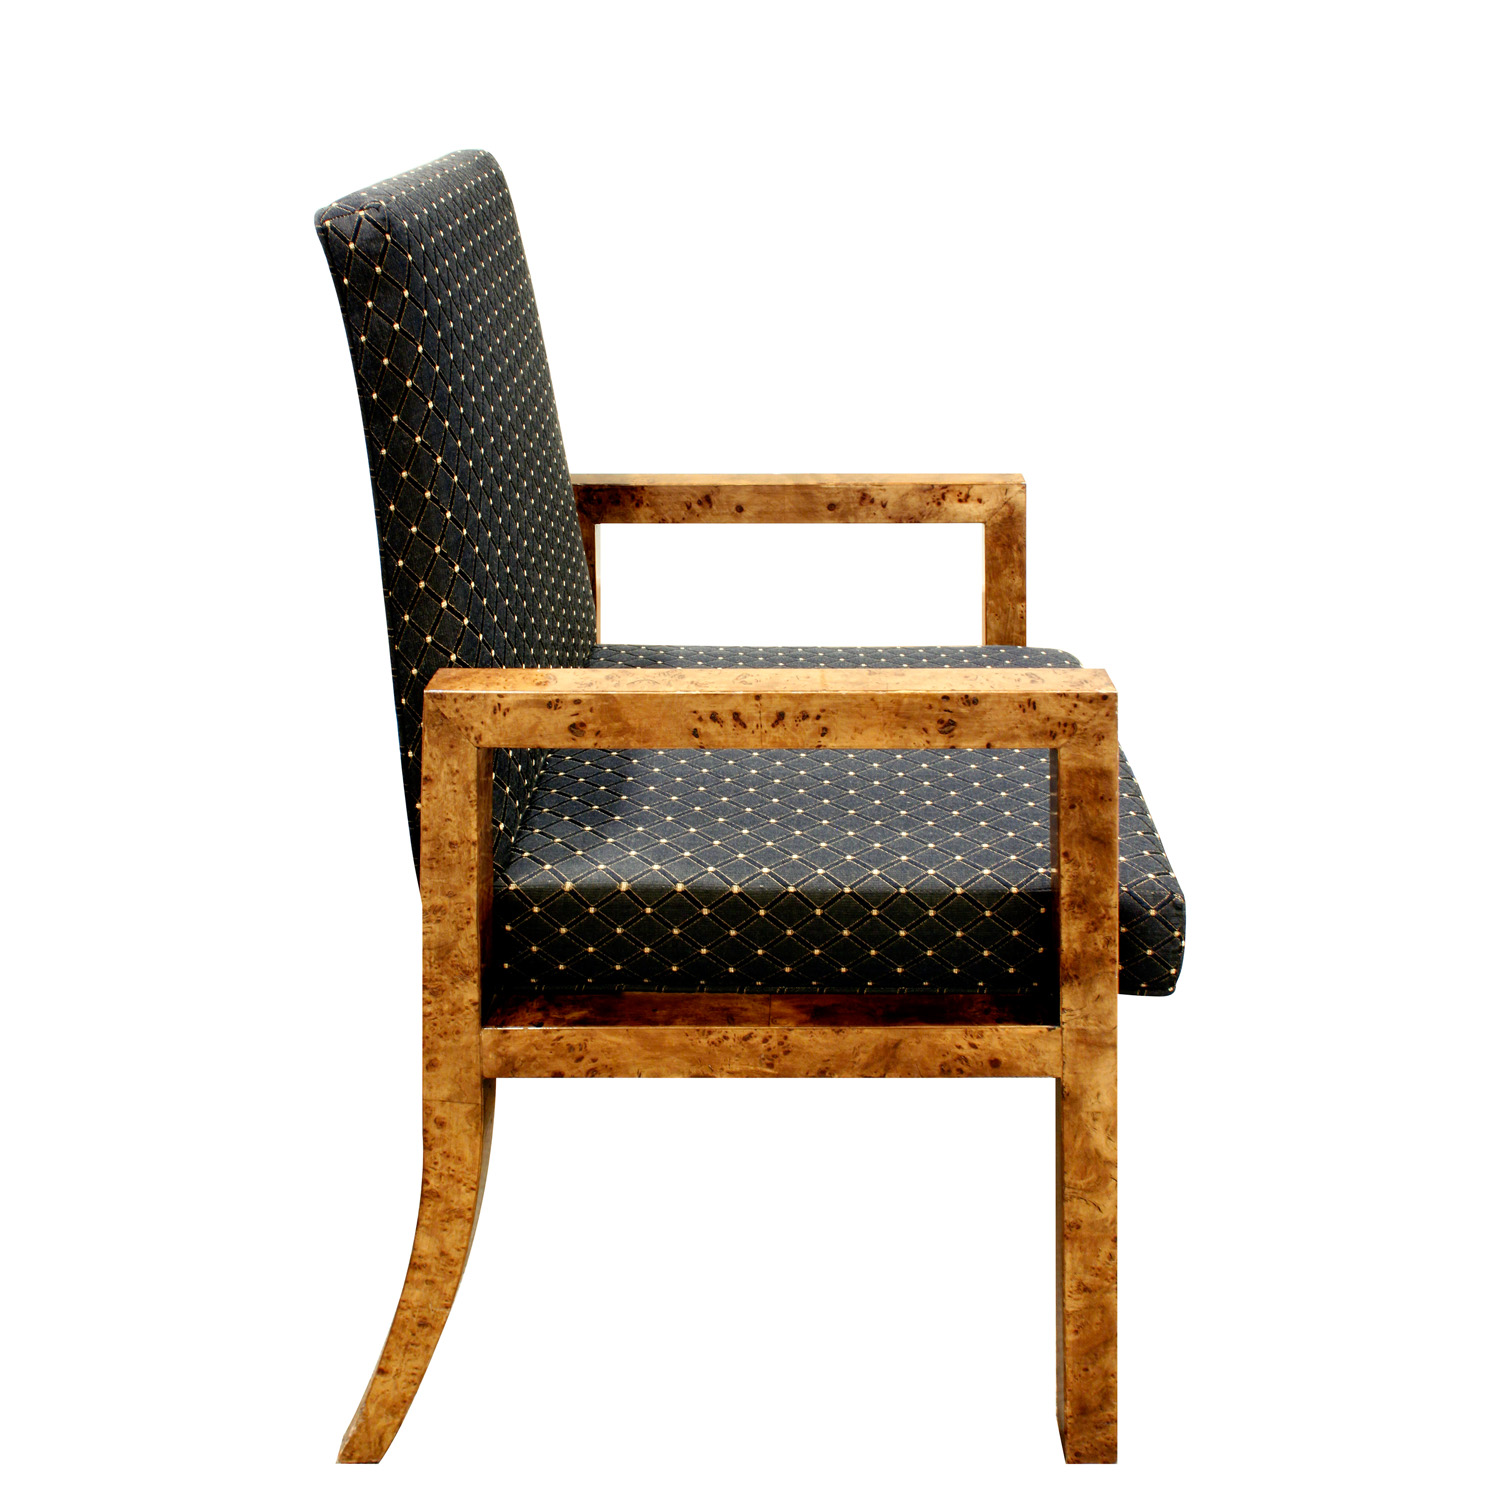 Directional 180 set 10 wlnut burl diningchairs 180  arms sde.jpg